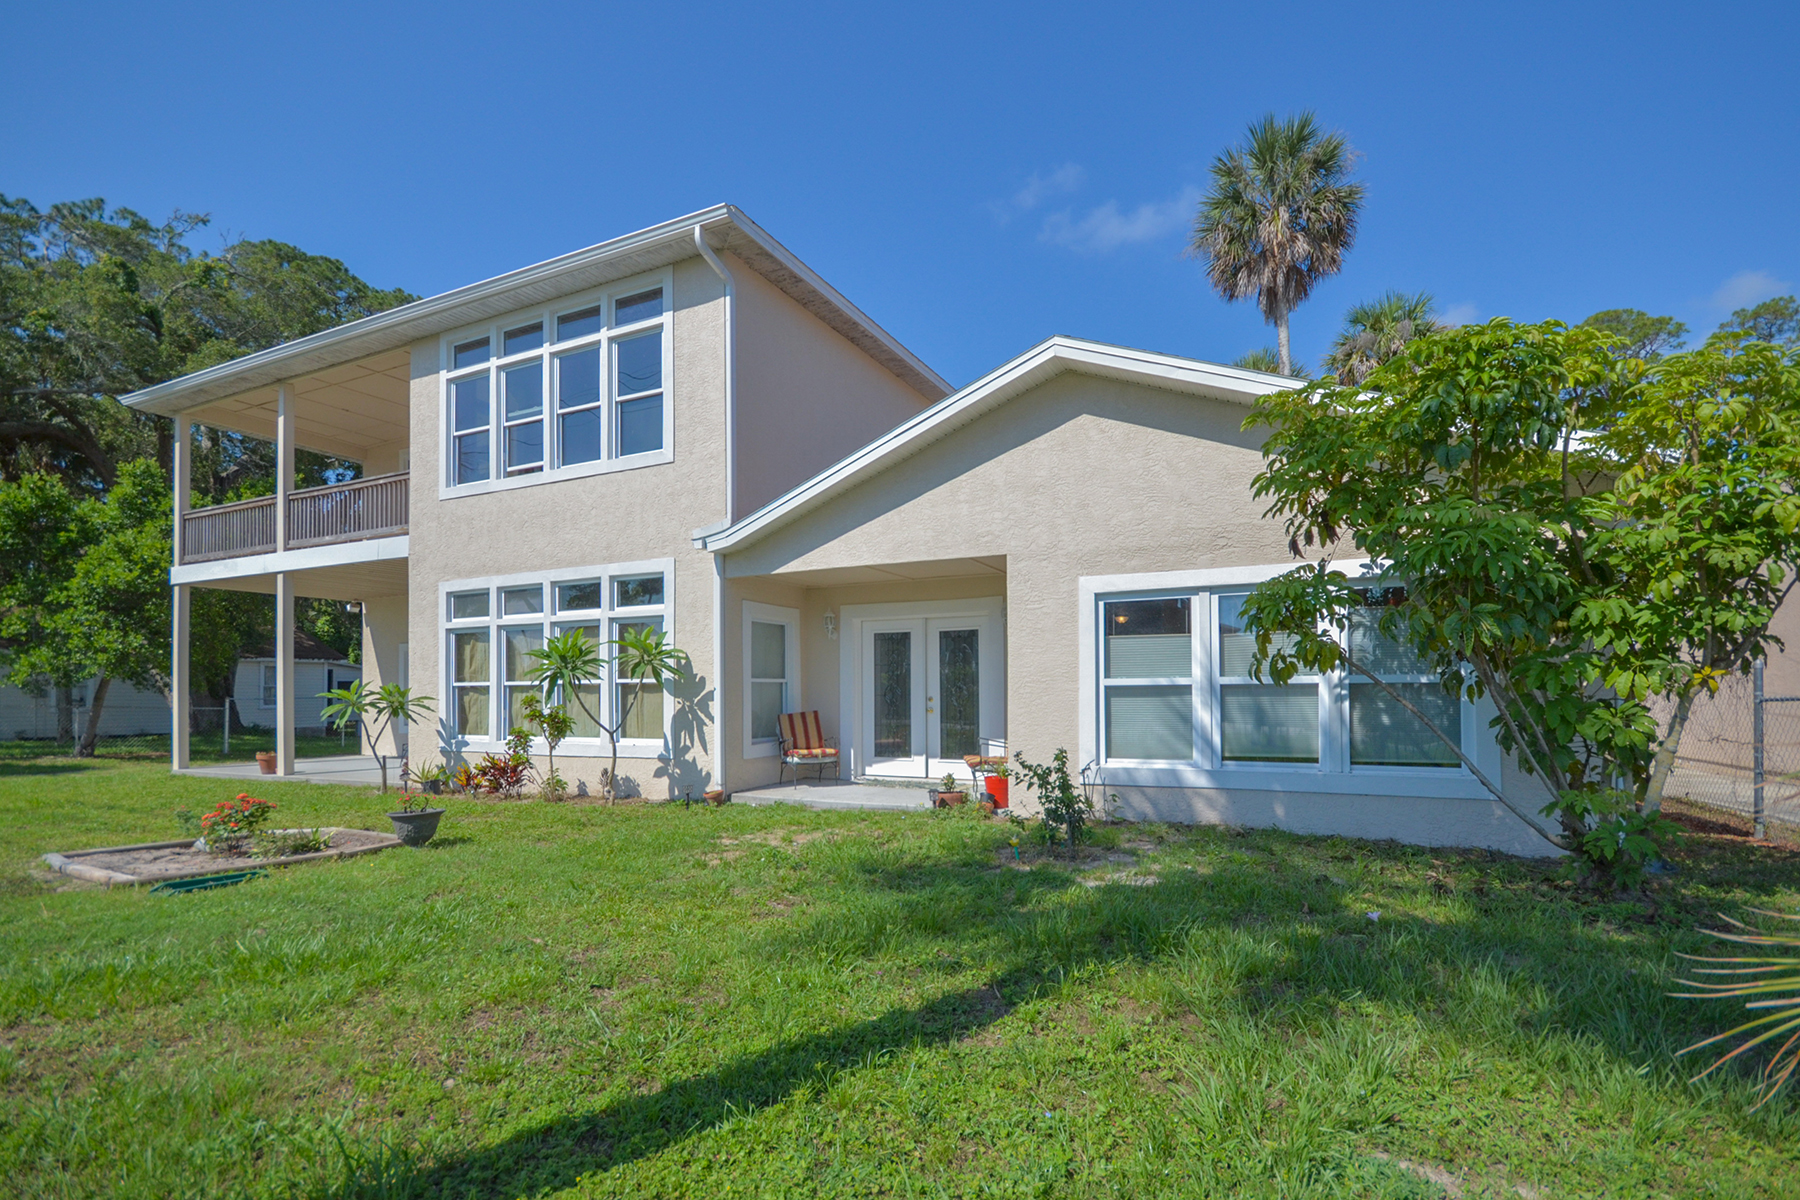 Villa per Vendita alle ore DAYTONA BEACH - HOLLY HILL 1618 Riverside Dr Holly Hill, Florida, 32117 Stati Uniti